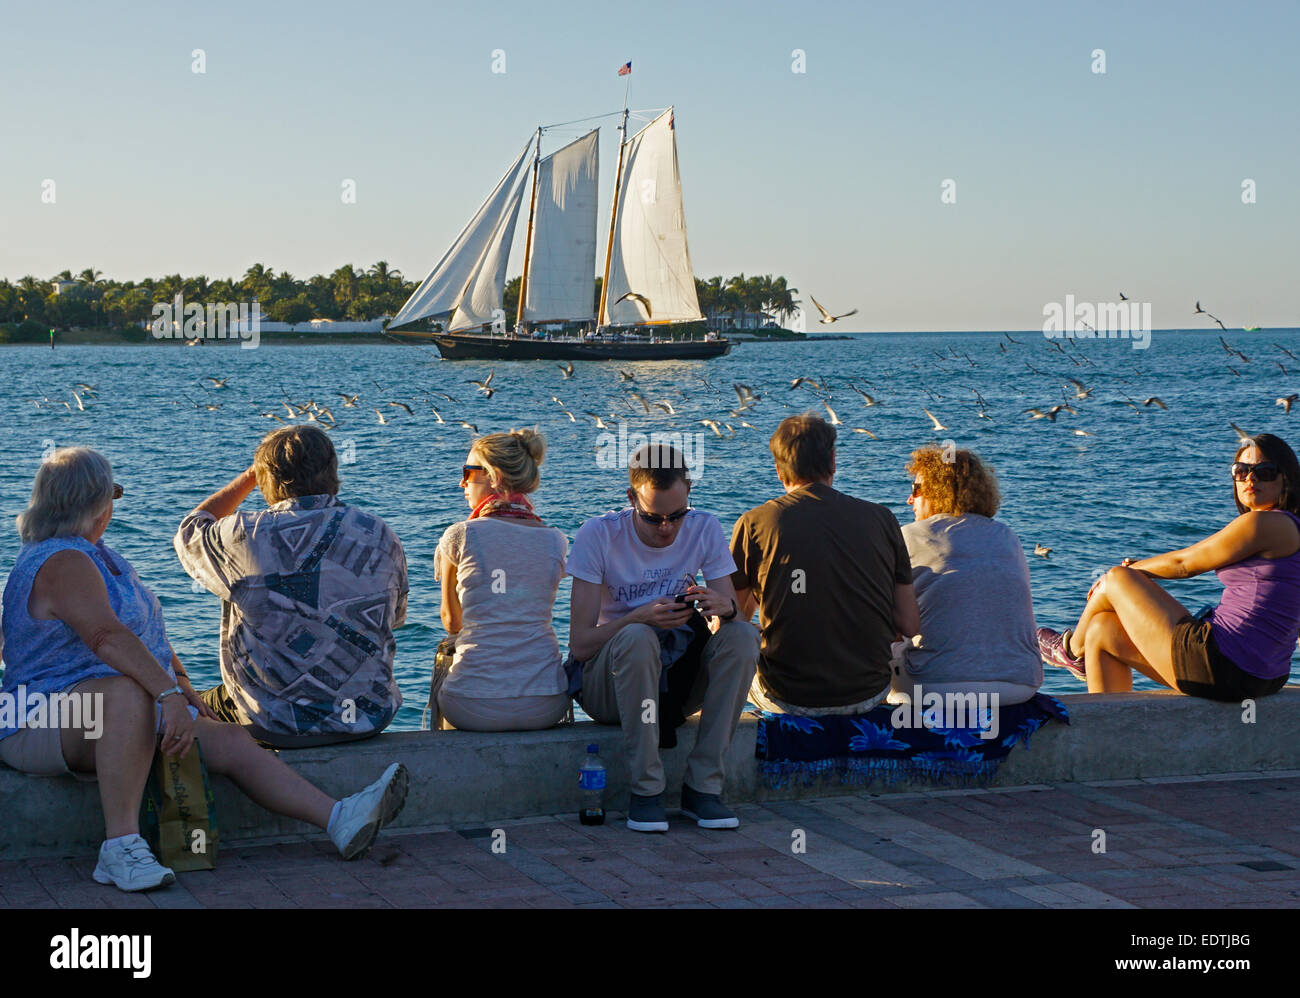 Tourists in Key West's Mallory Square watching schooner on sunset cruise. - Stock Image